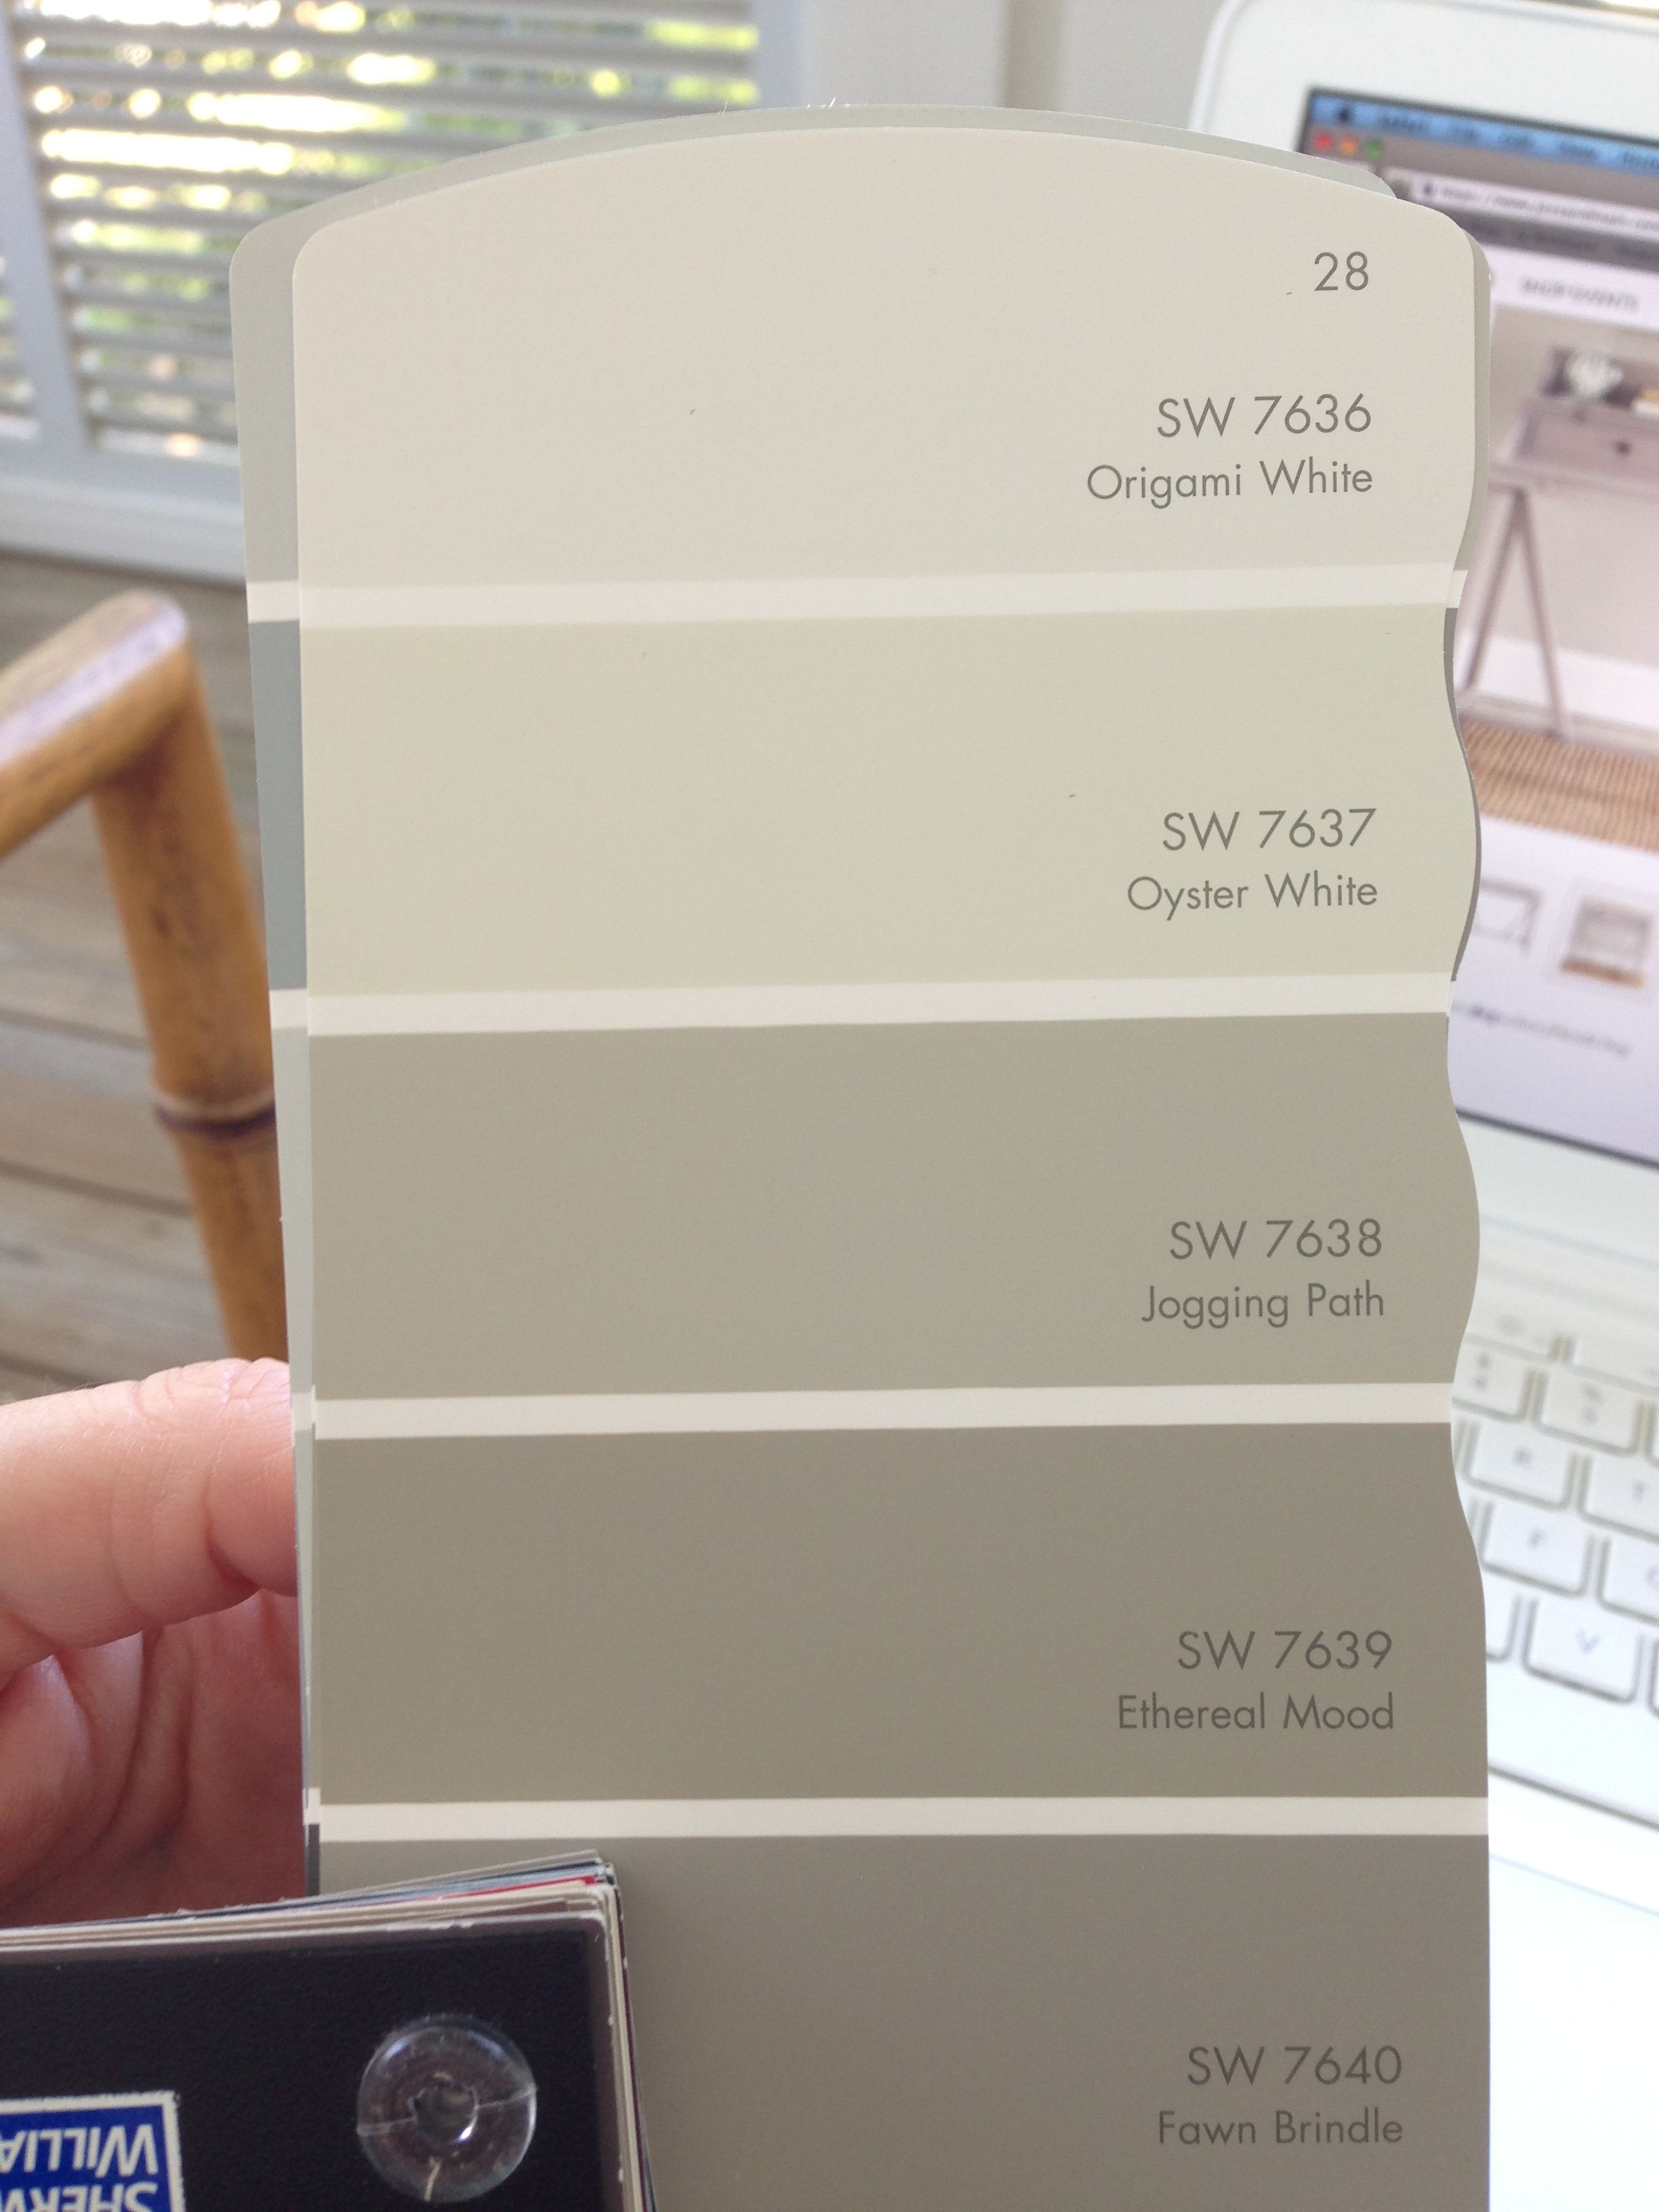 Oyster White For Brick Jogging Path Shutters Ethereal Mood Door